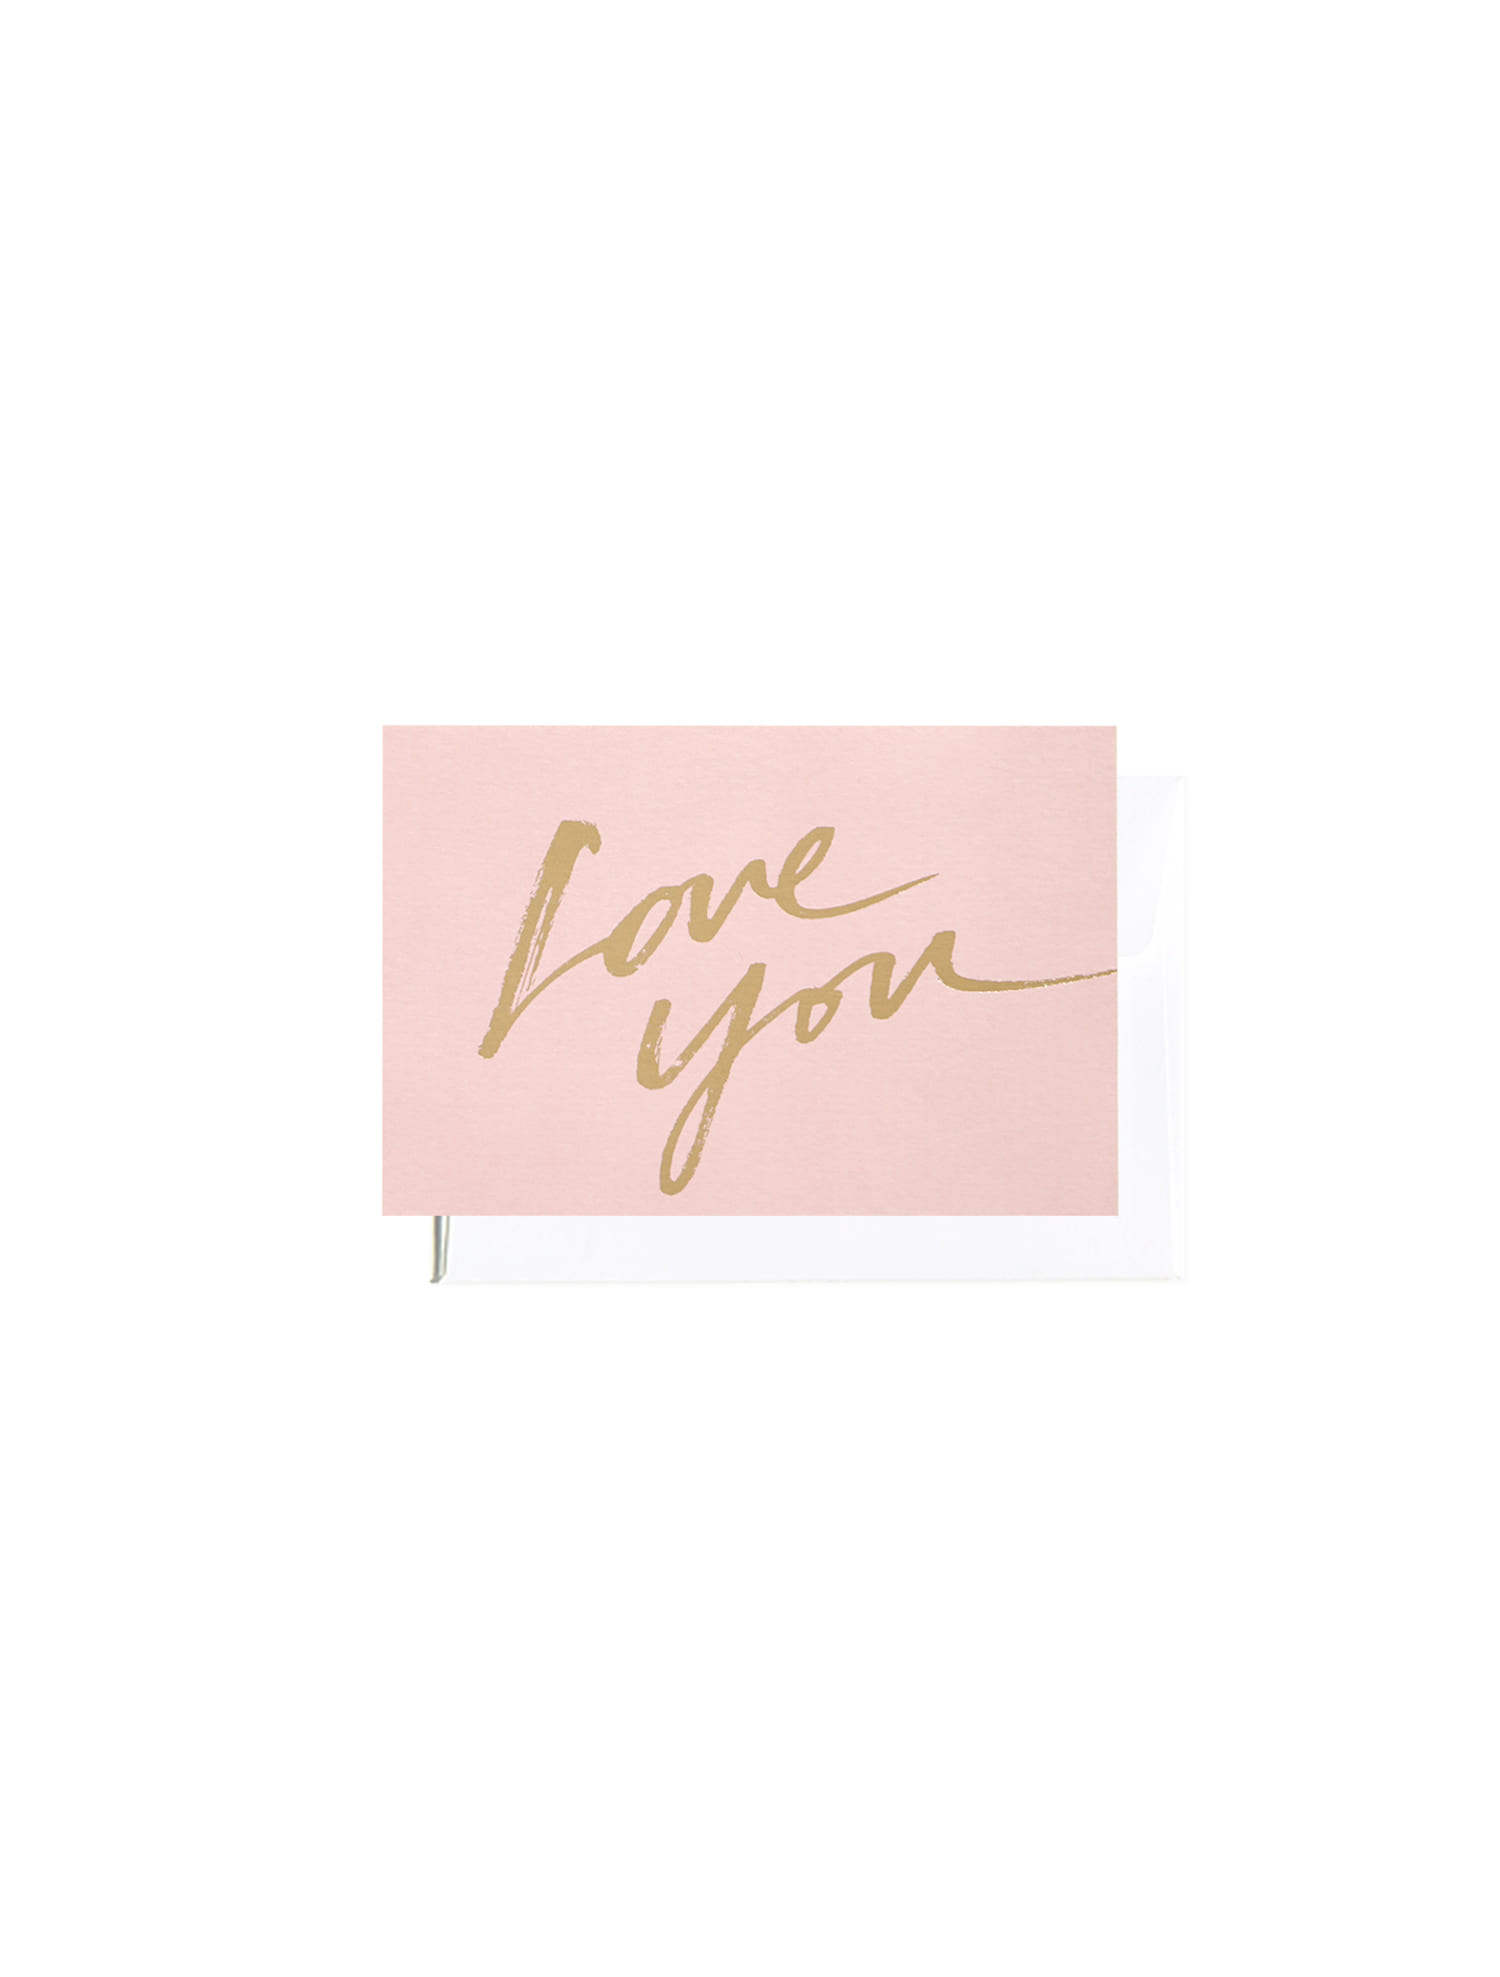 Love you calligraphy message card